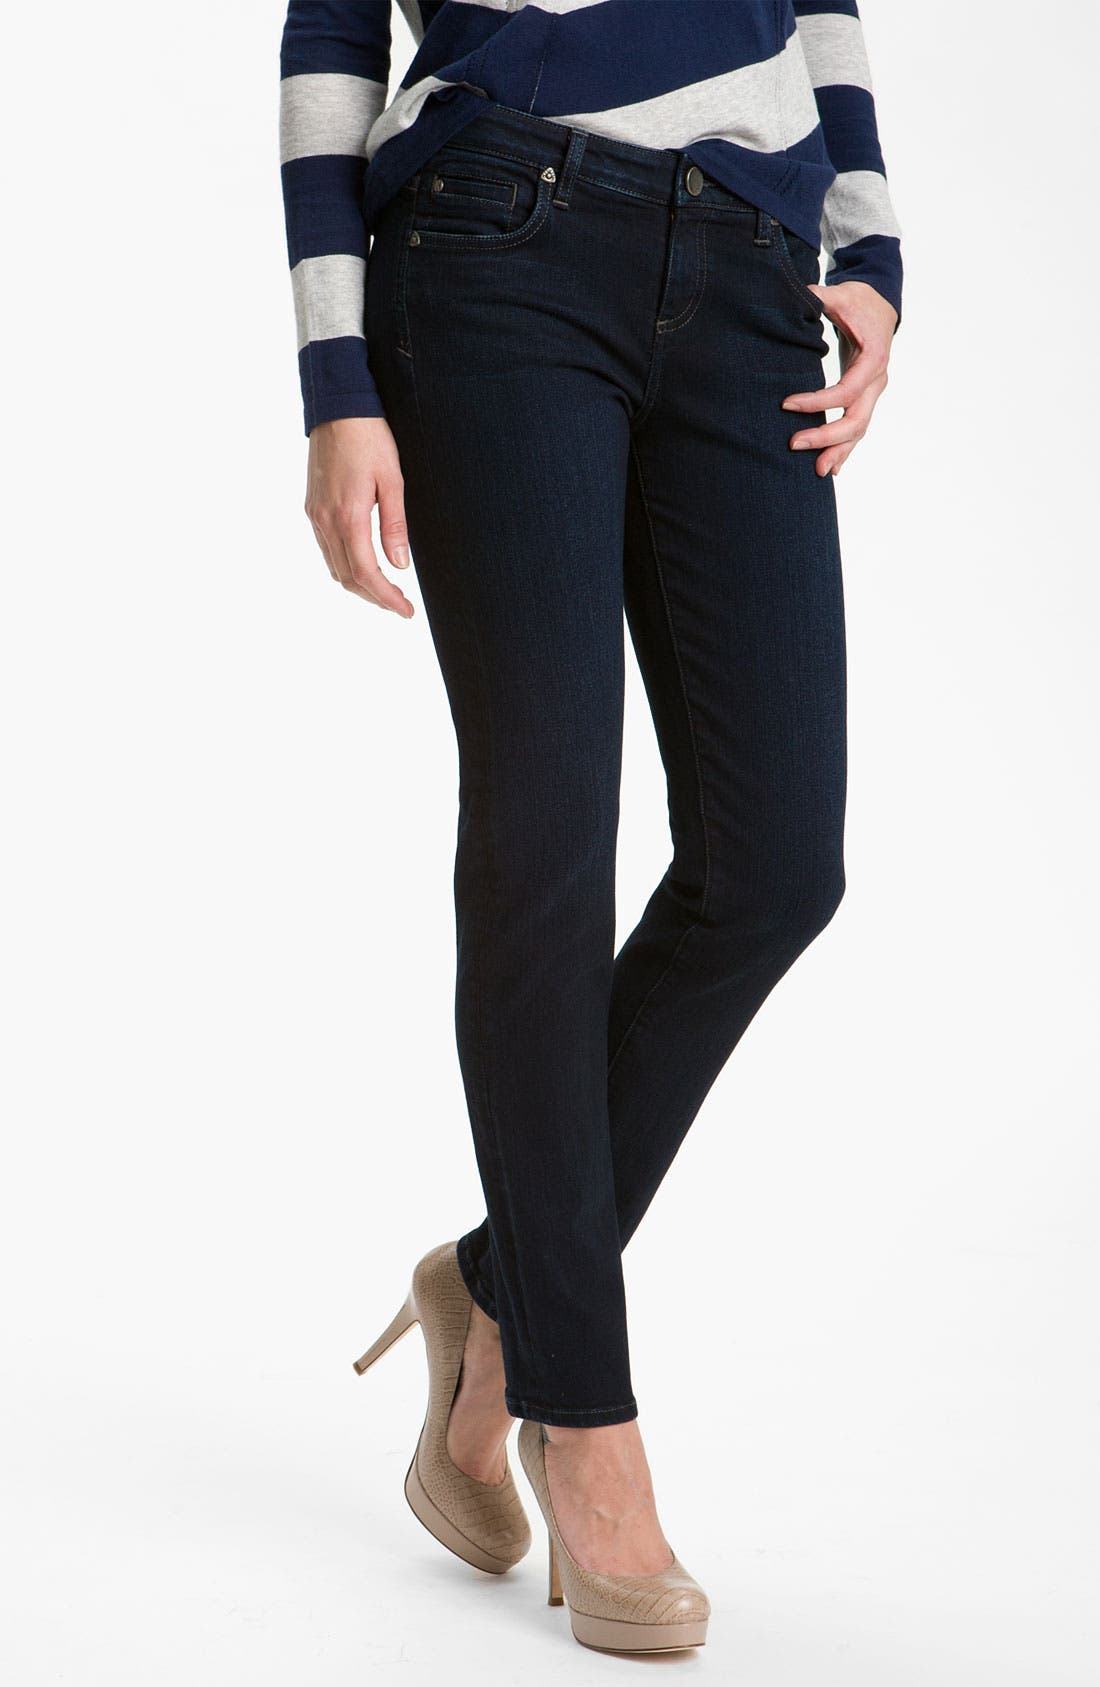 Alternate Image 1 Selected - KUT from the Kloth 'Diana' Skinny Jeans (Exquisite Wash)